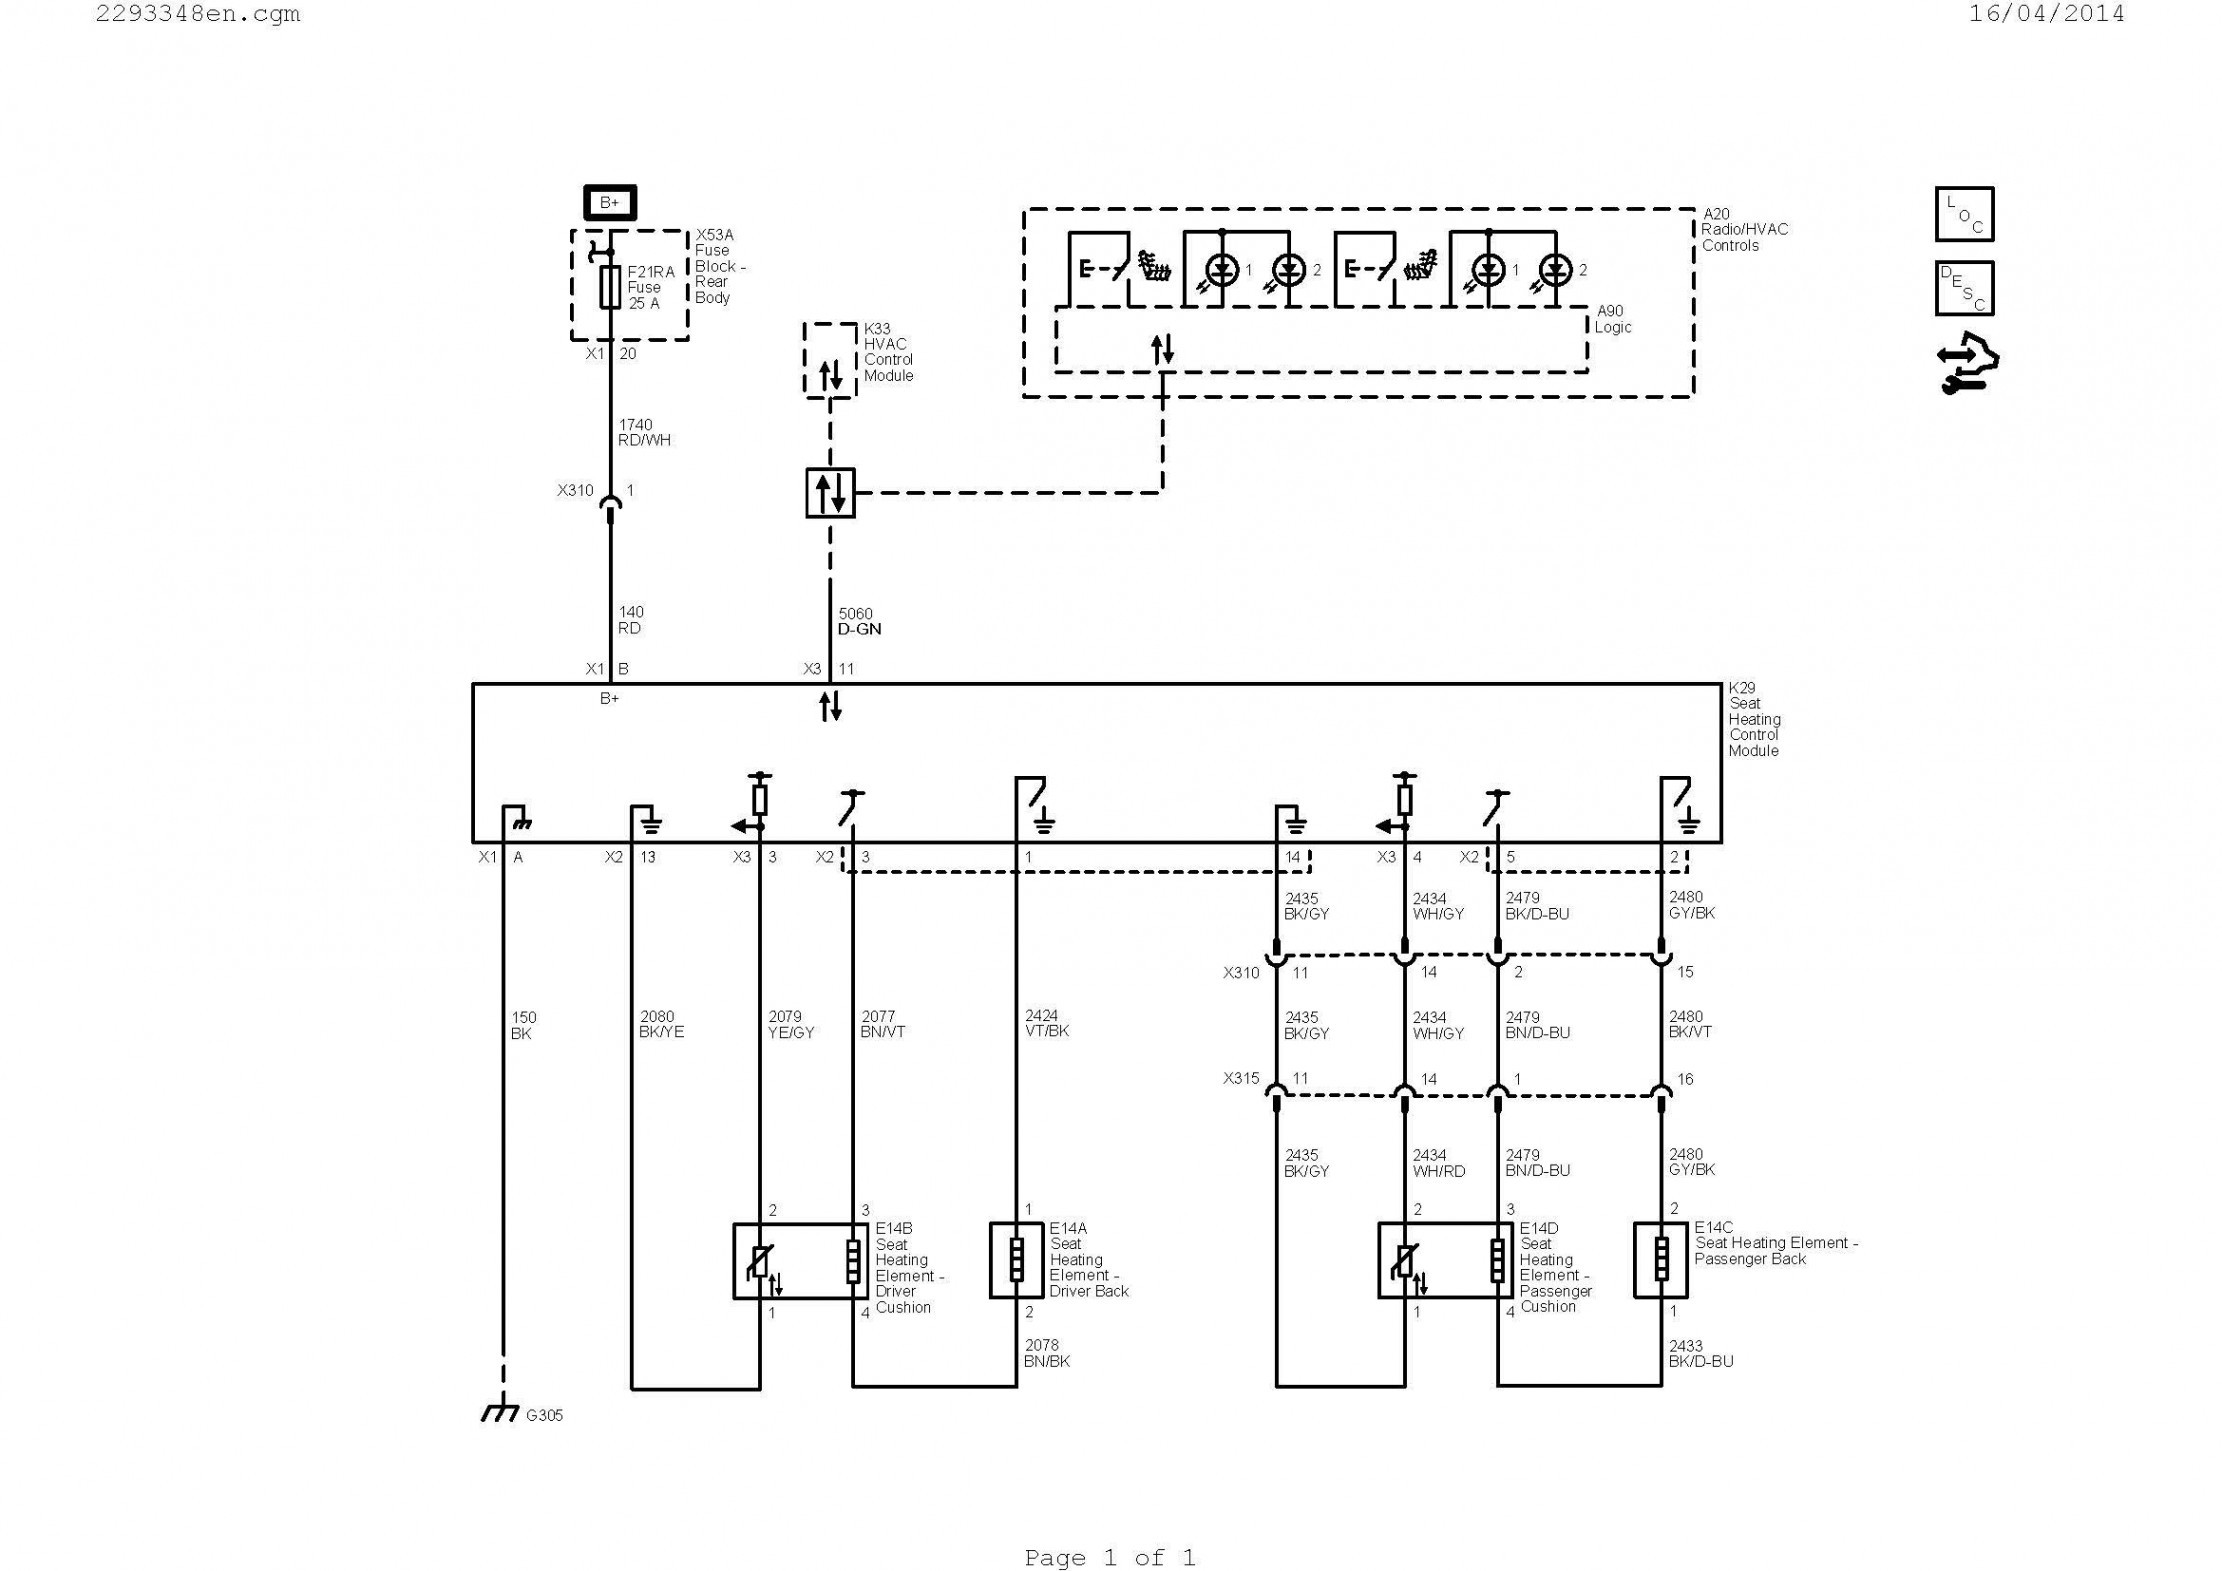 House Wiring Diagram – Electrical Wiring Diagrams New Phone Wiring Diagram New Best Wiring